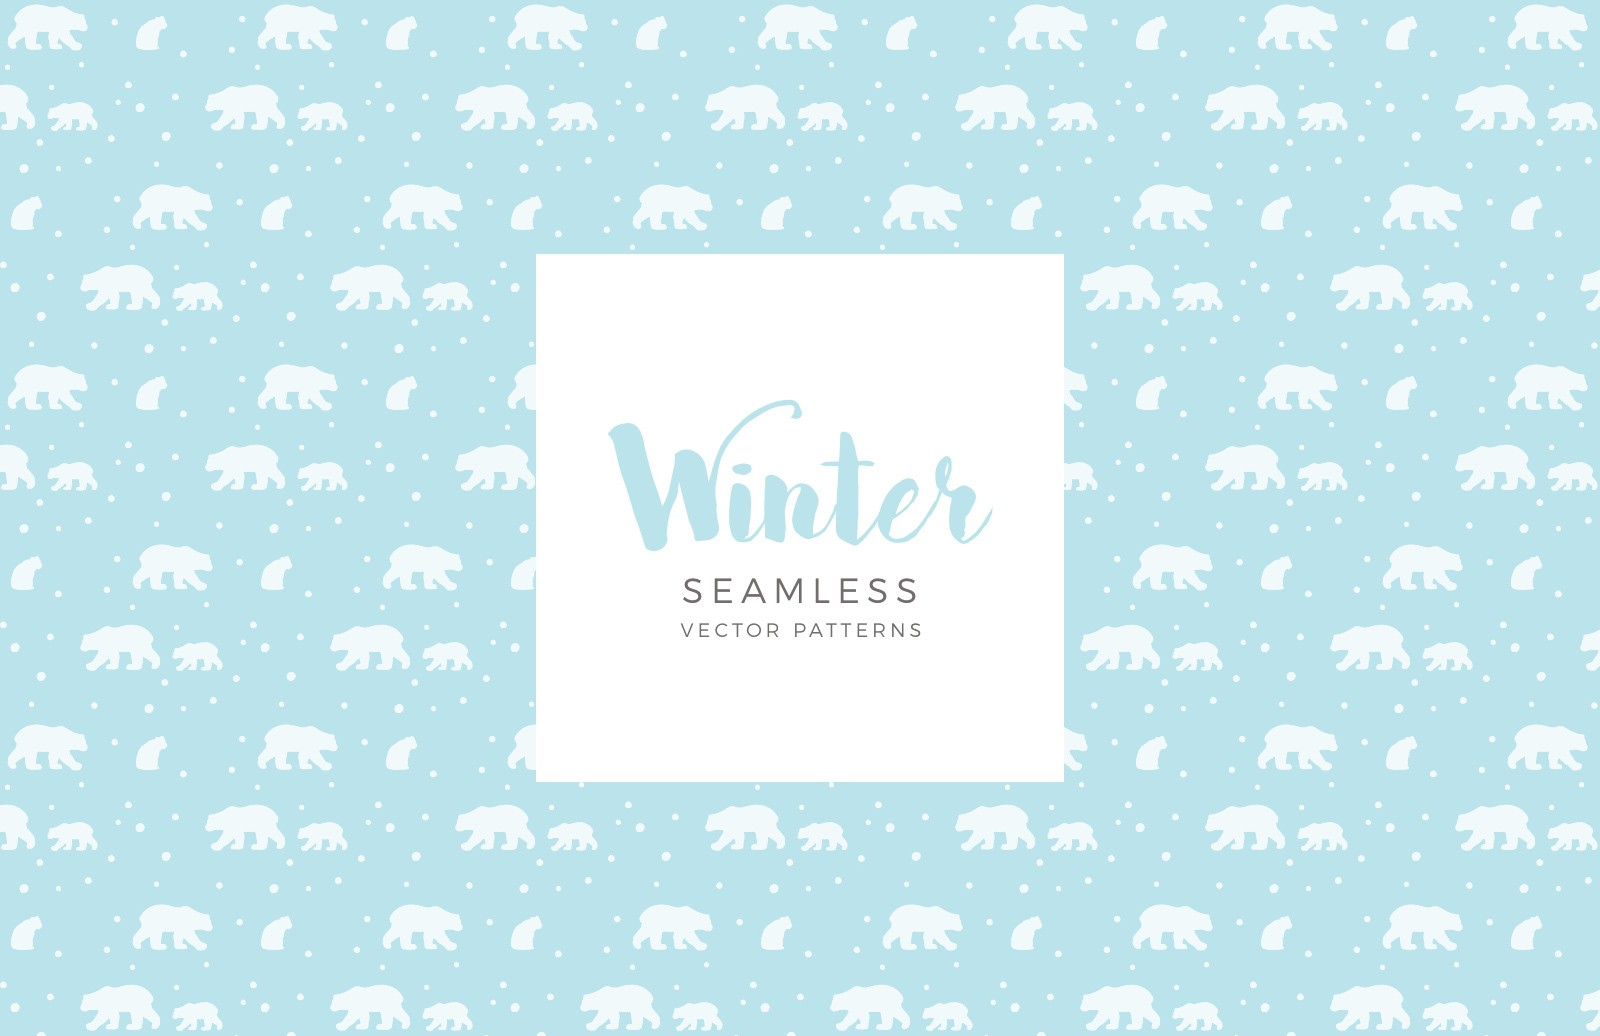 Seamless Vector Winter Patterns Preview 1